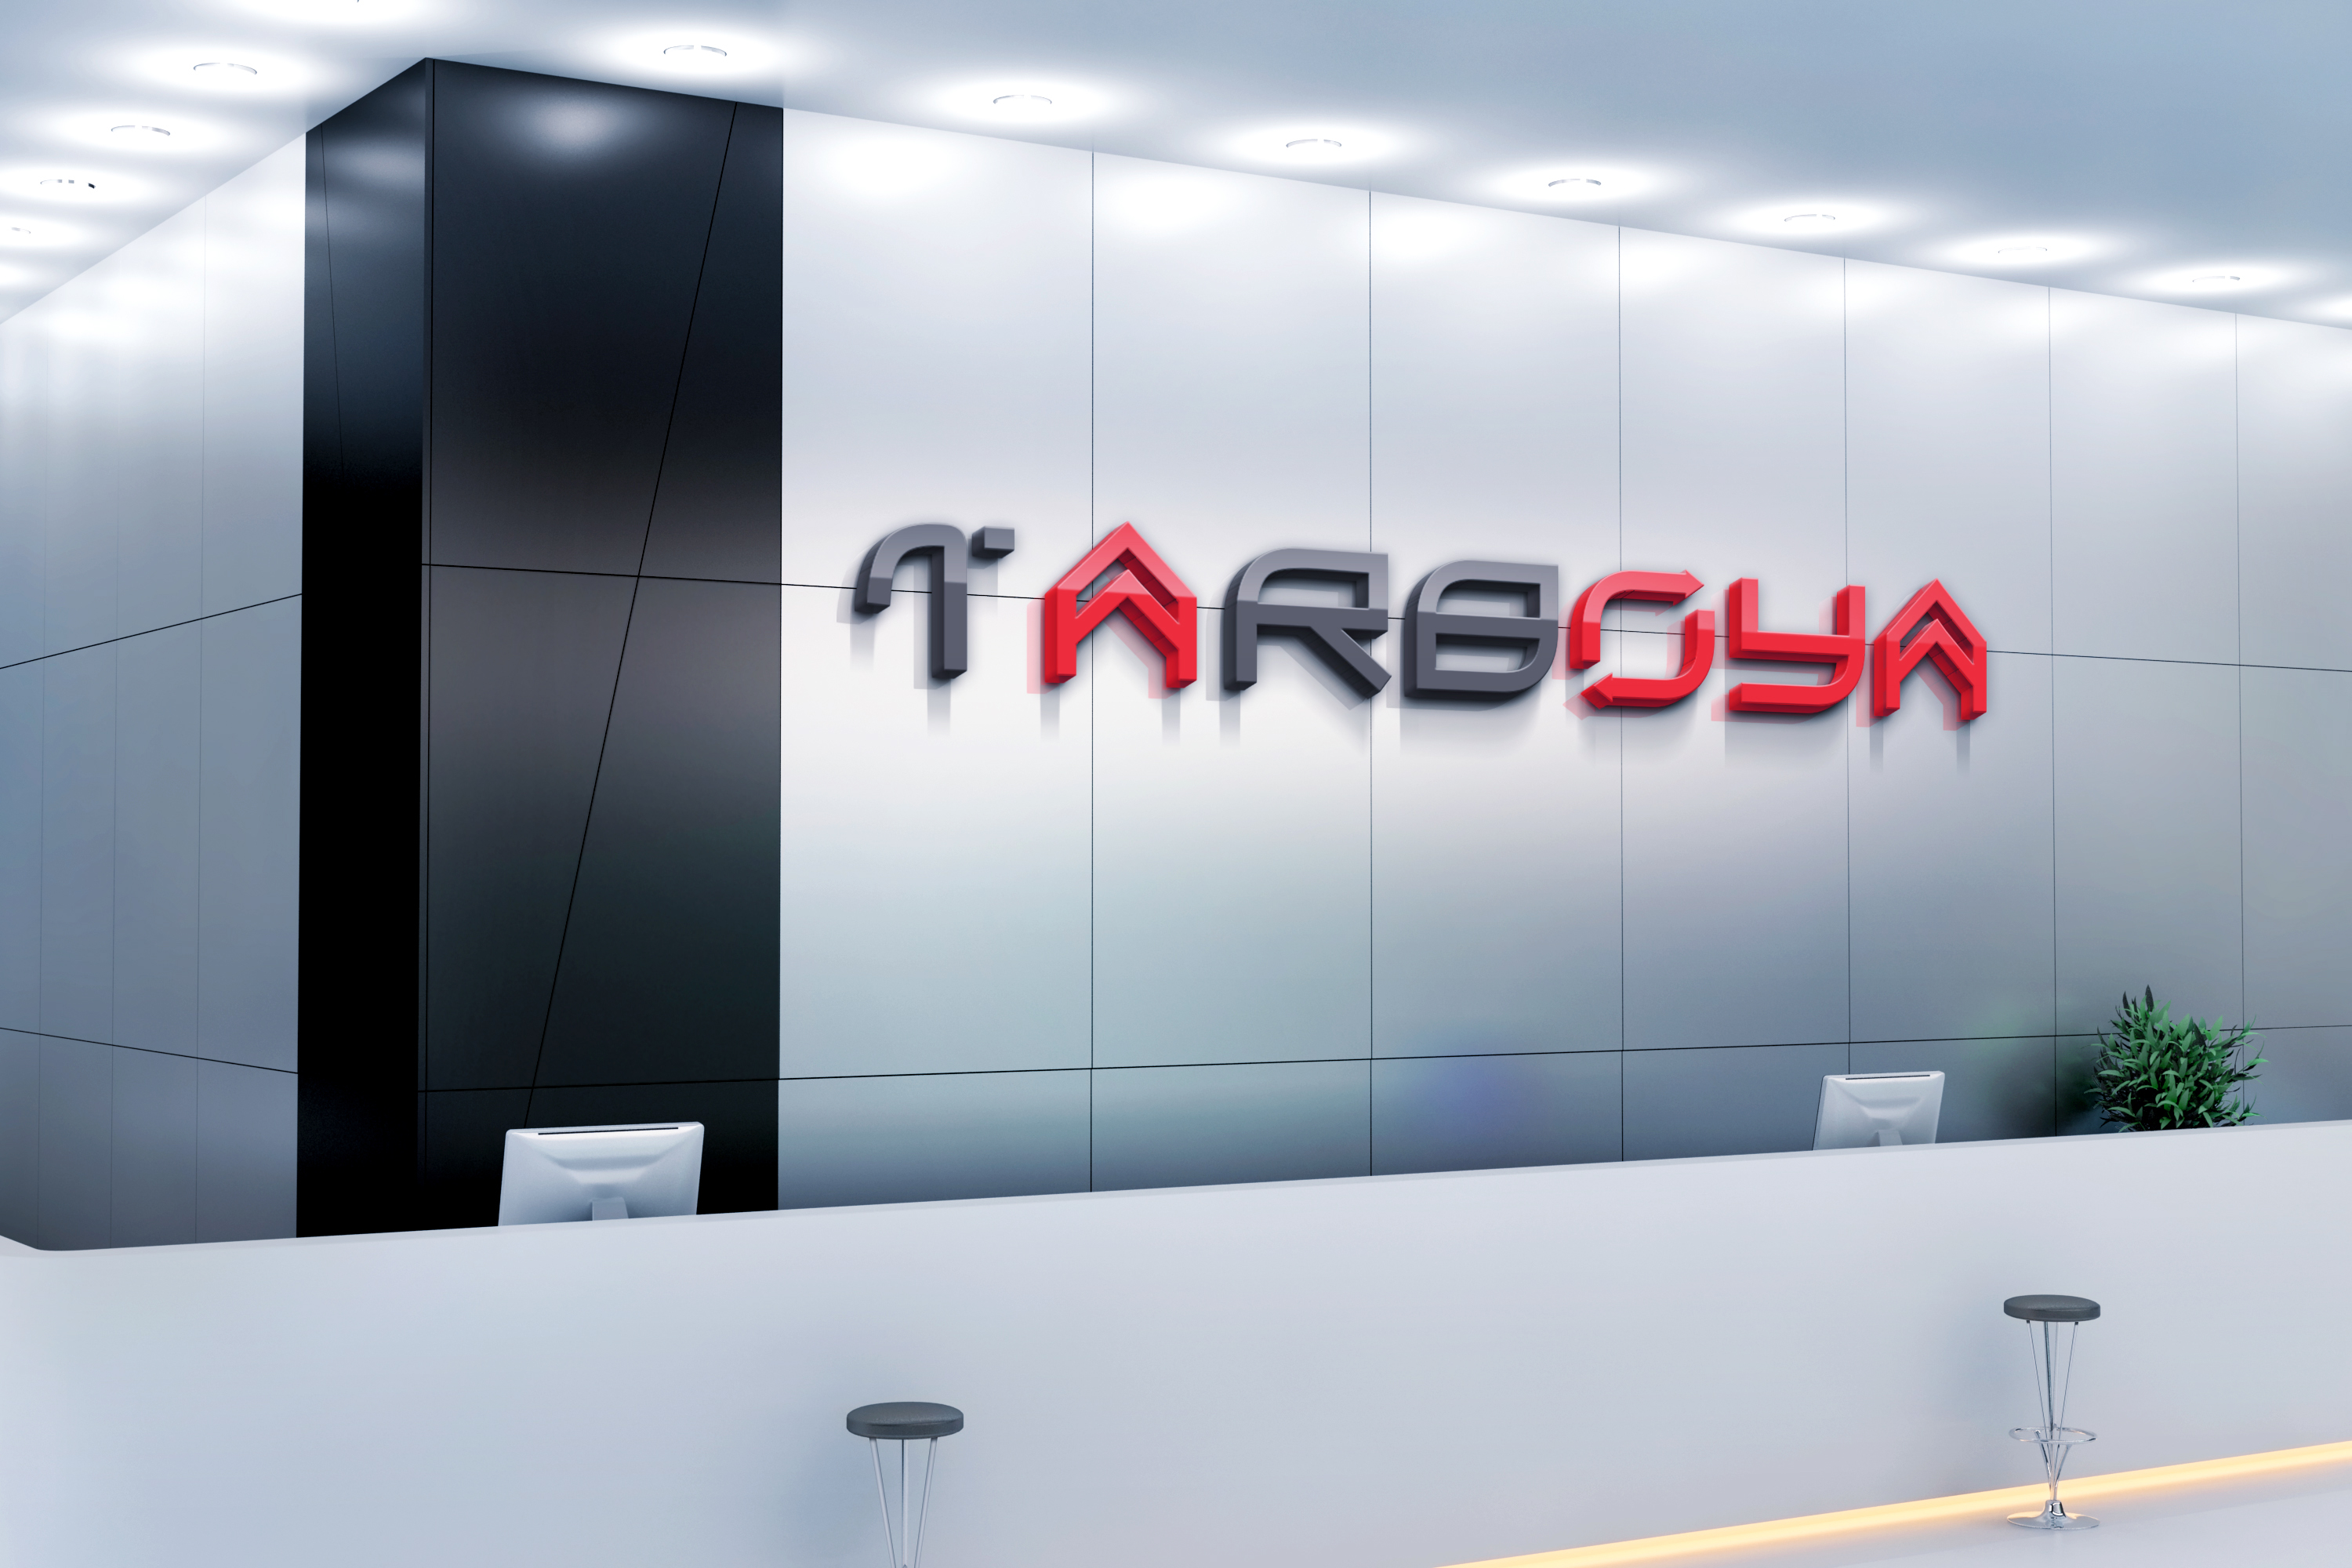 Tarboya Office